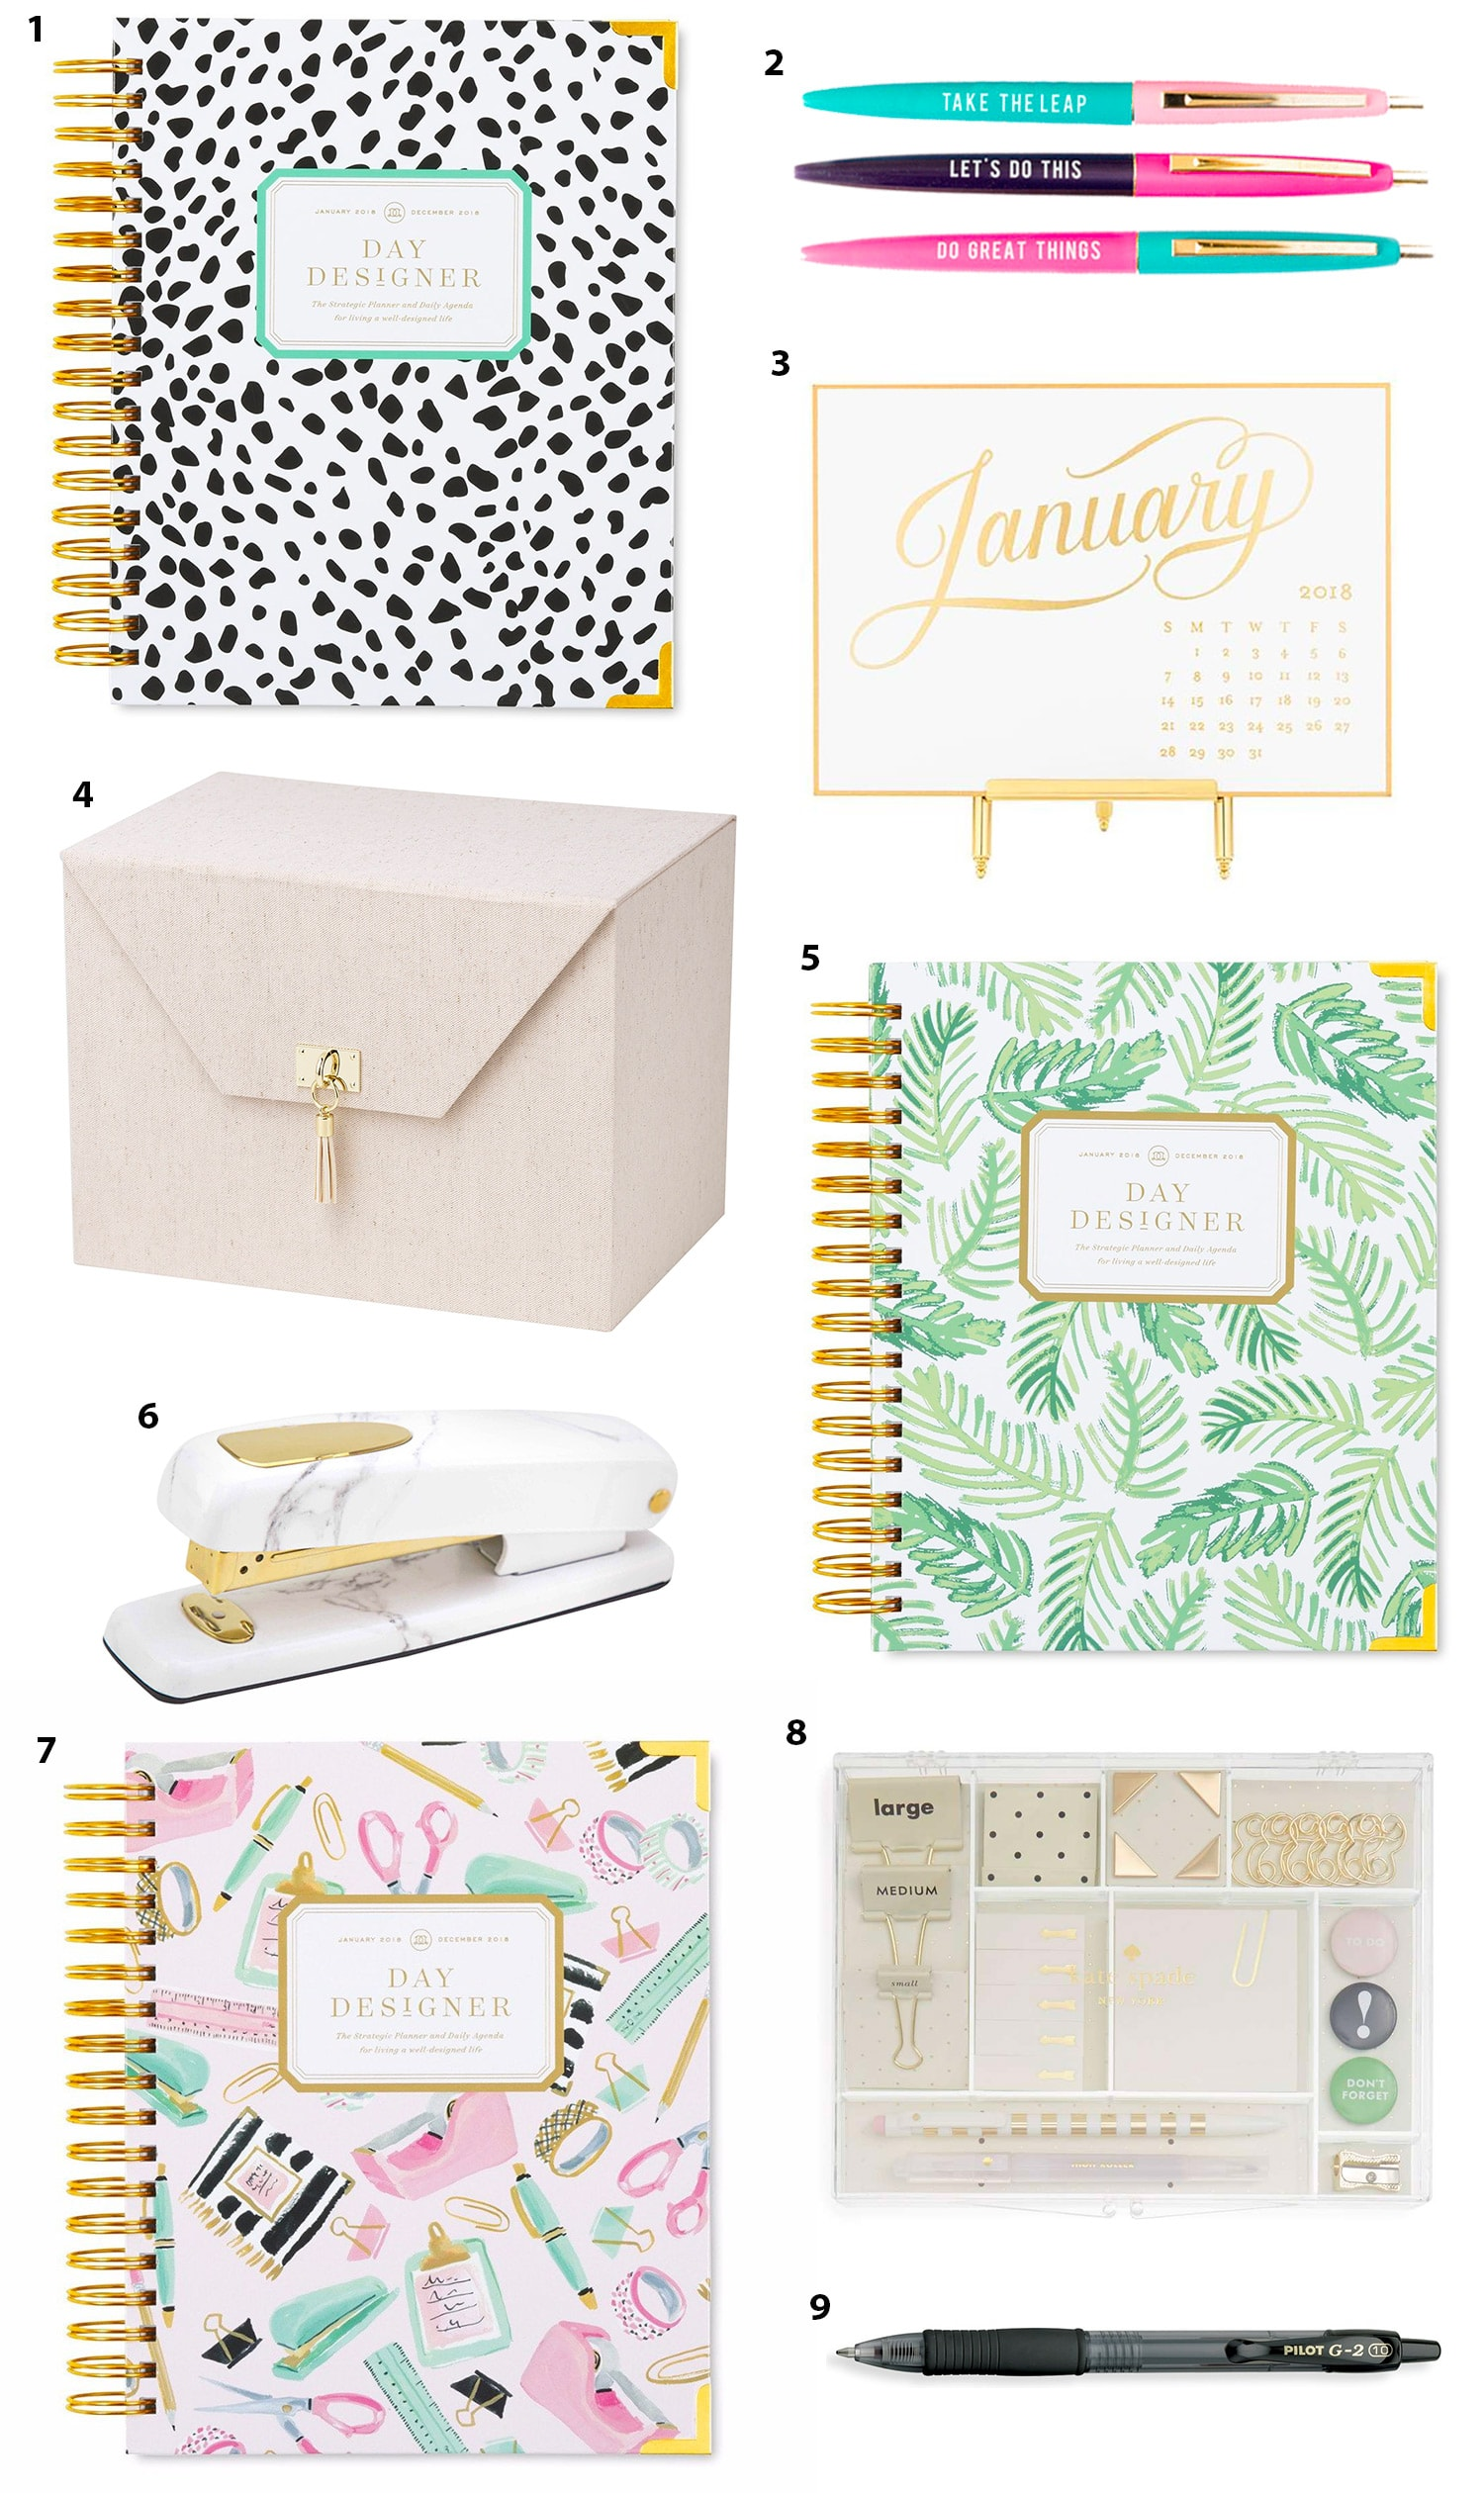 Cute Planners for 2018 | Organization planner | Cute planners | Planners for woman | Ashley Brooke Nicholas